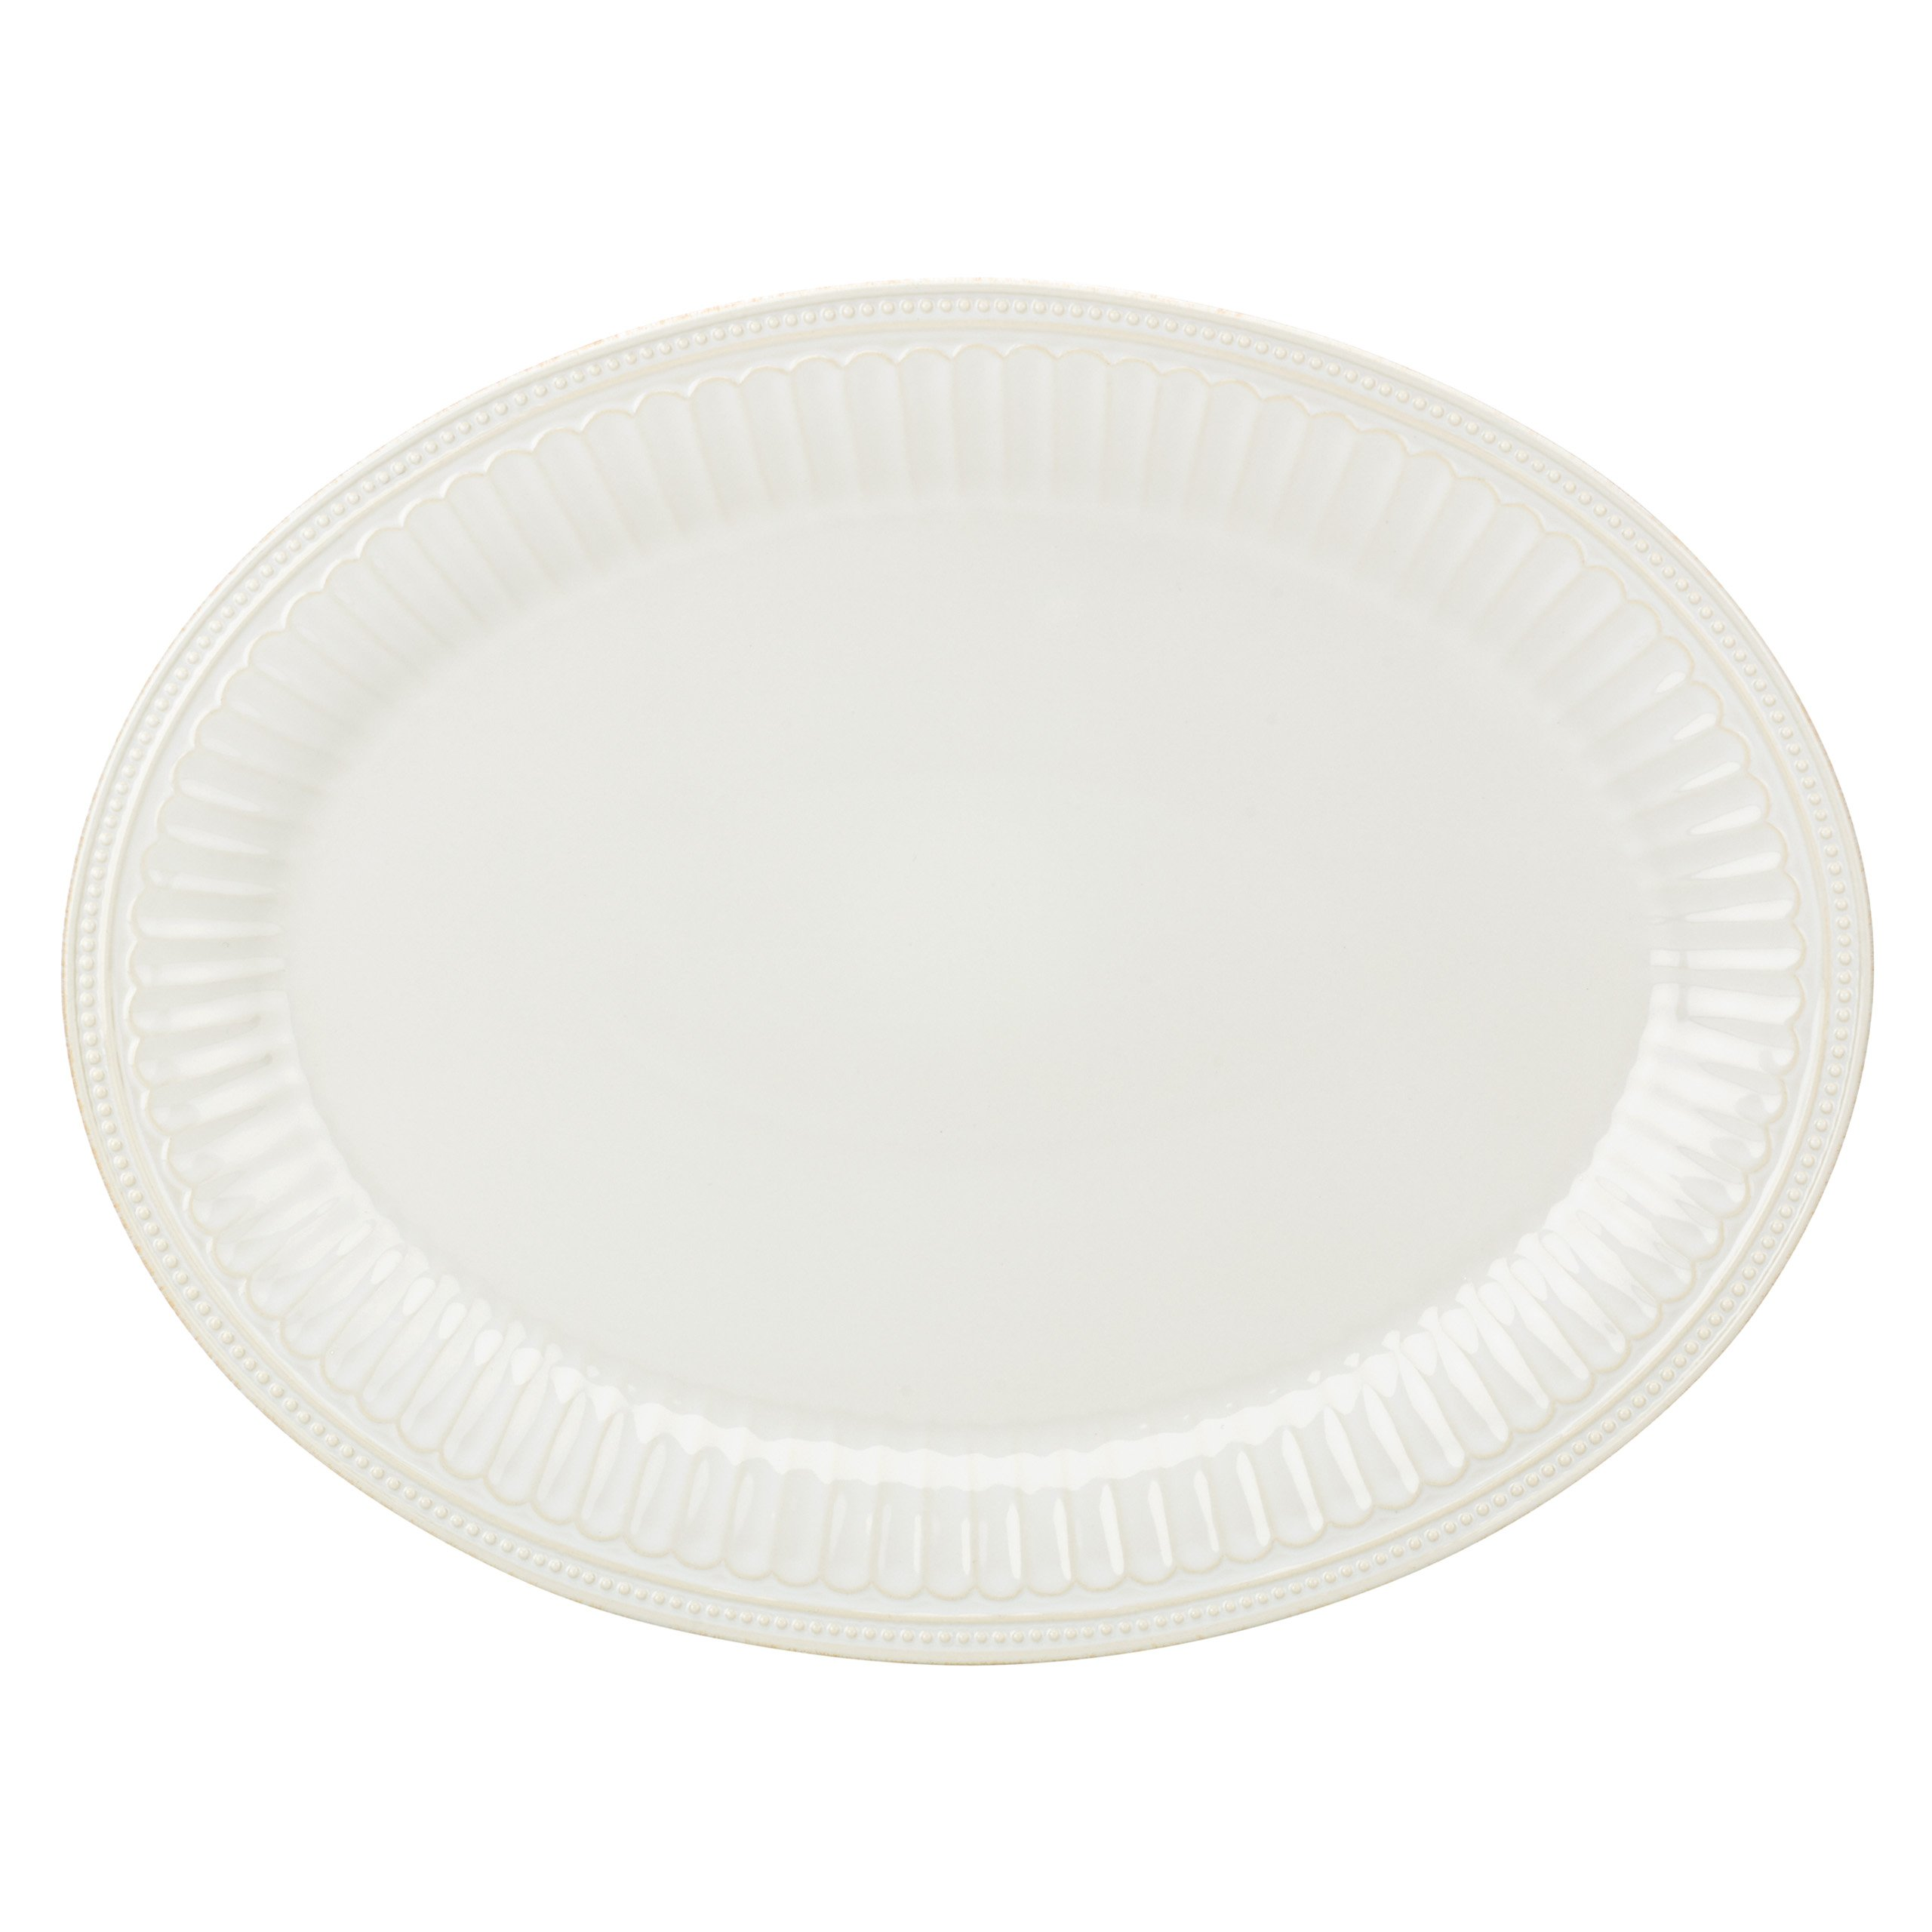 Lenox French Perle Groove Oval Platter, White